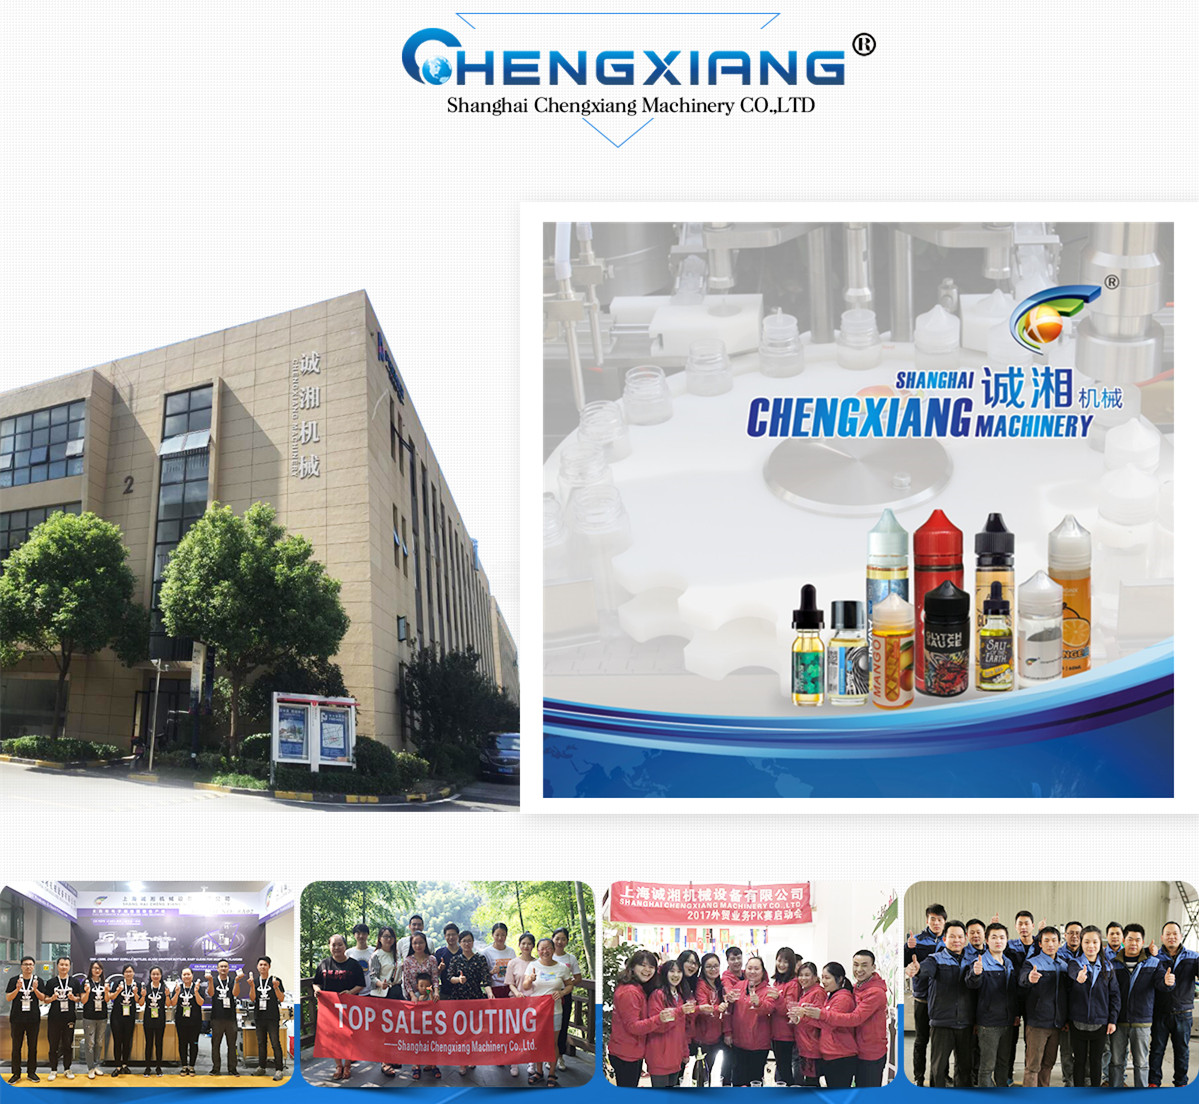 SHANGHAI CHENGXIANG MACHINERY CO.,LTD.